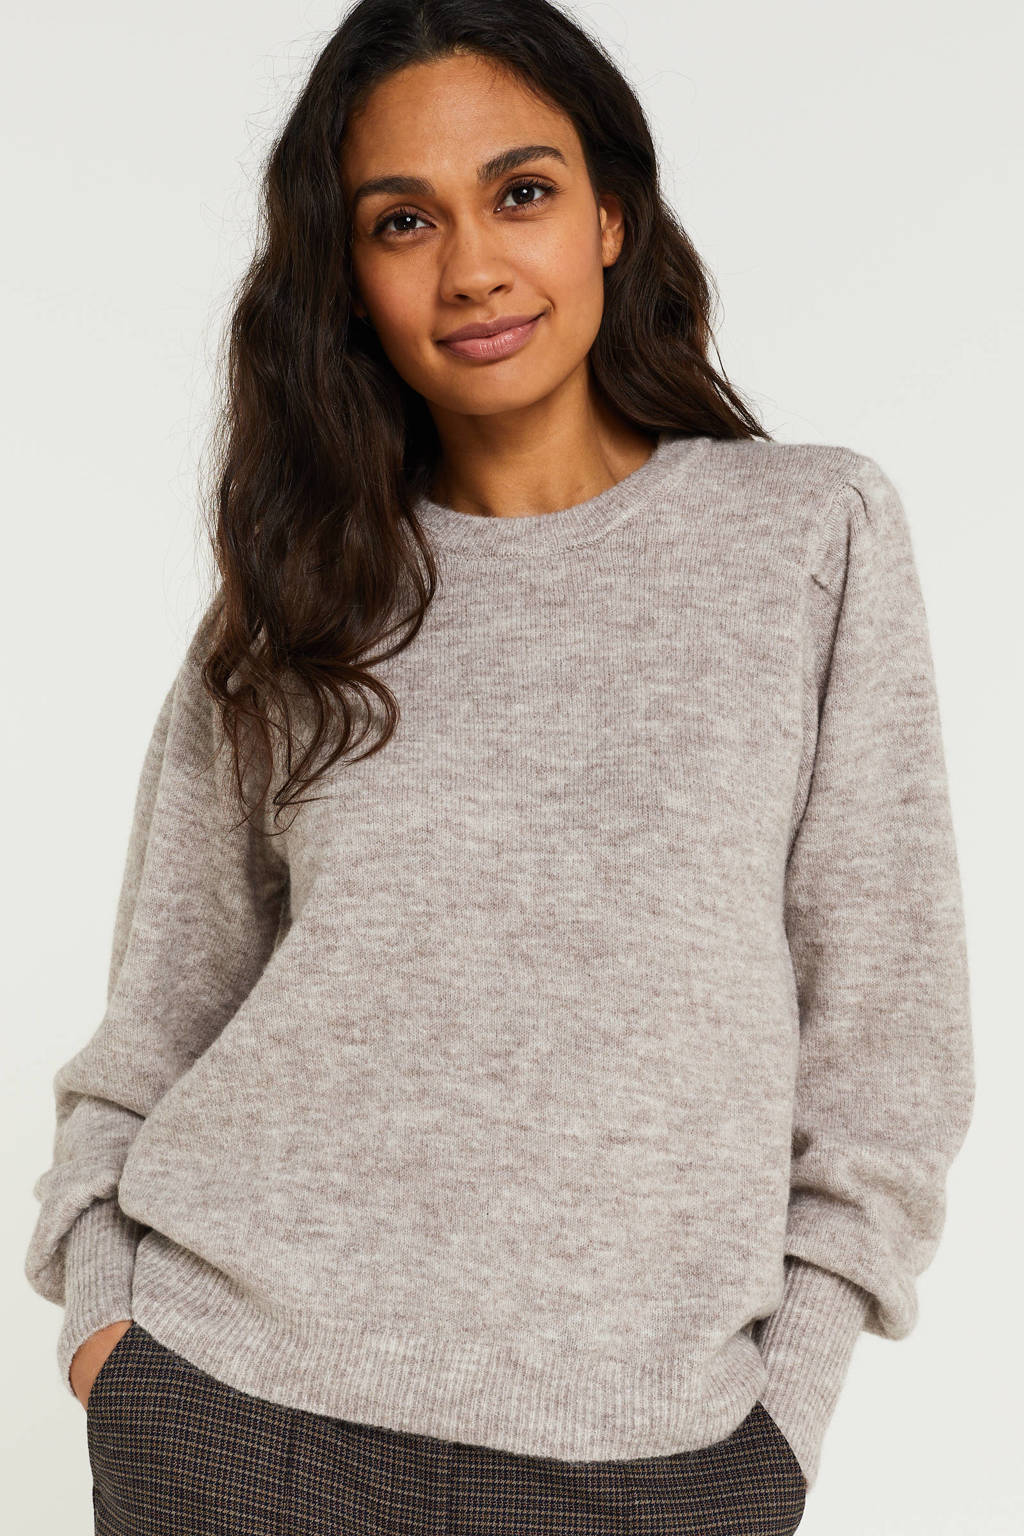 PIECES trui warm taupe, Warm taupe